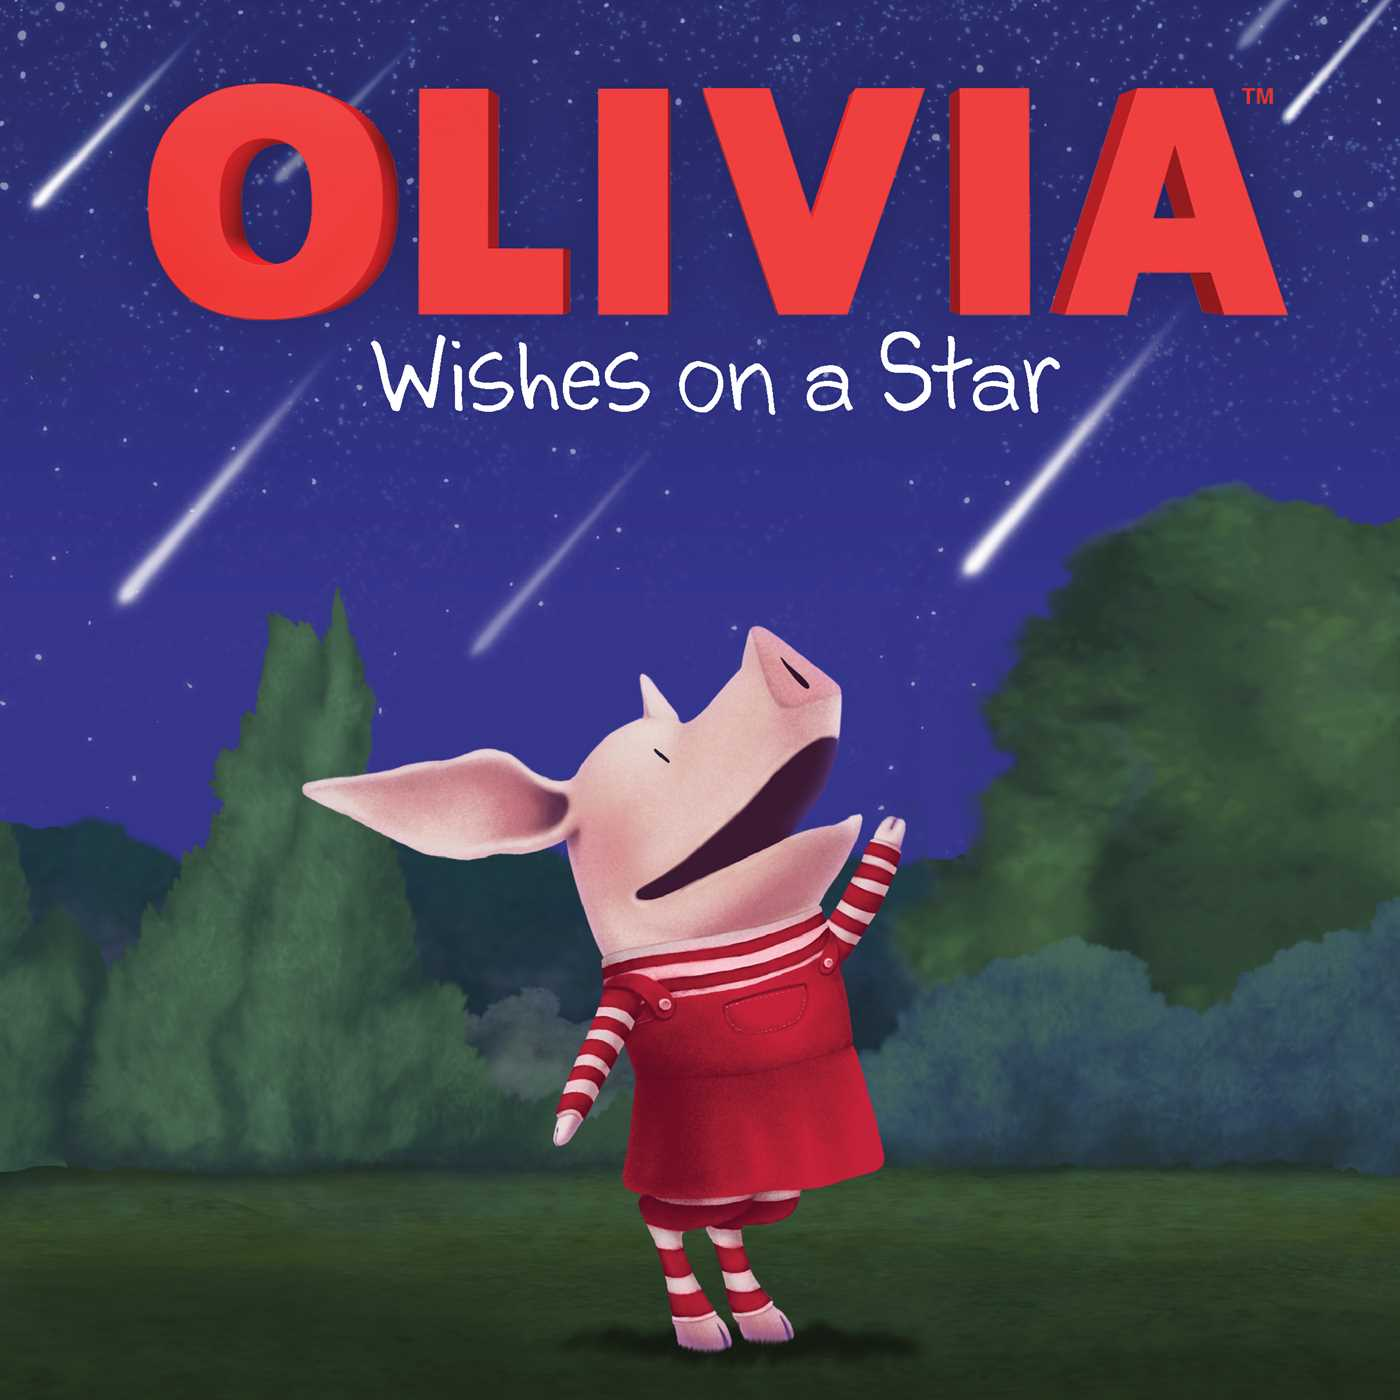 Olivia wishes on a star 9781481417709 hr